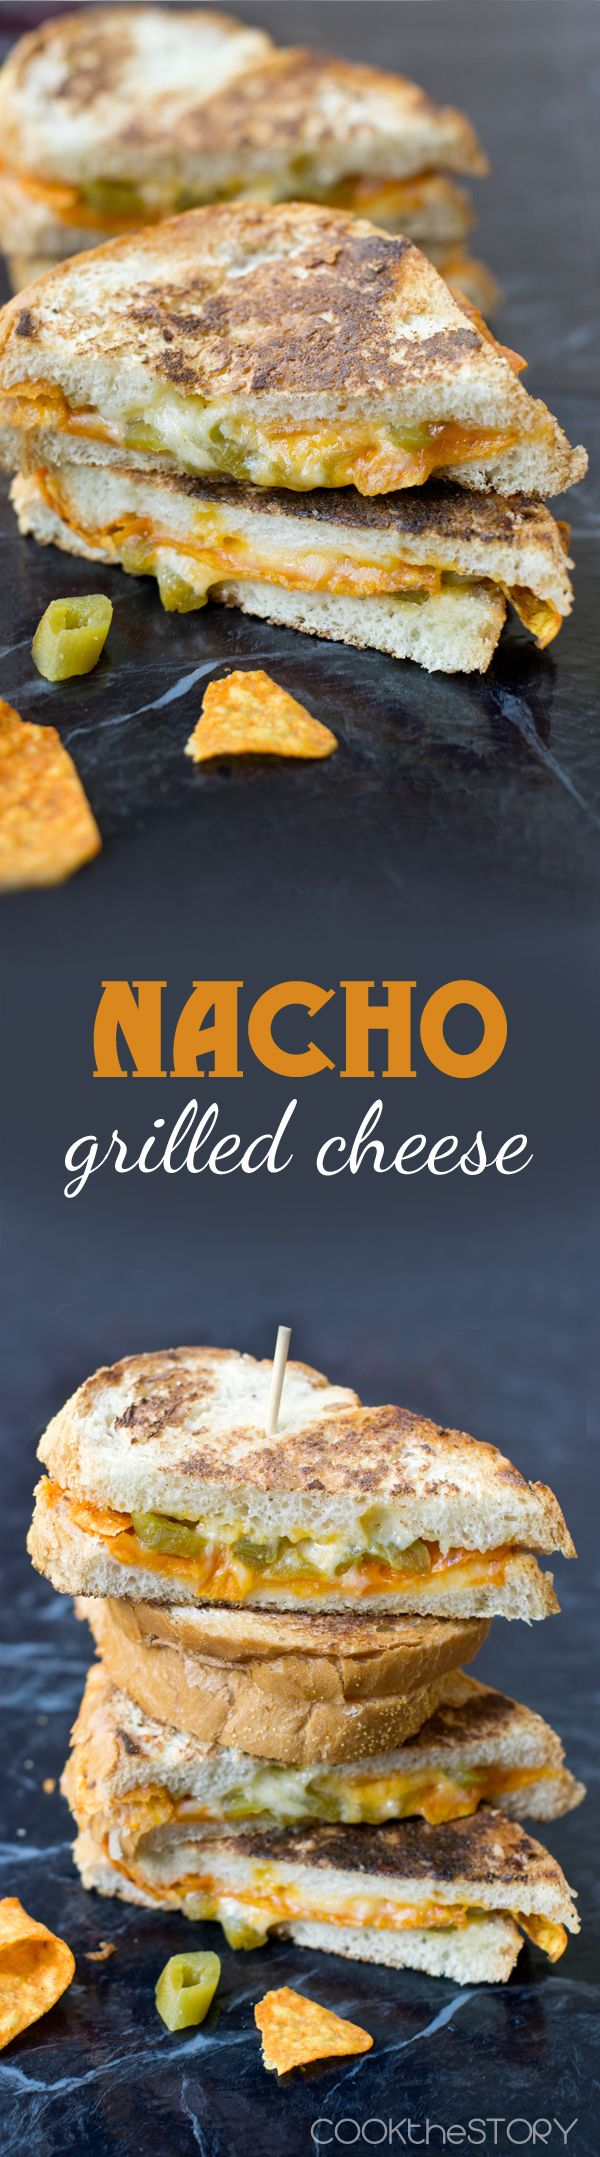 Nacho grilled cheese sandwich with crunchy tortilla chips right inside!